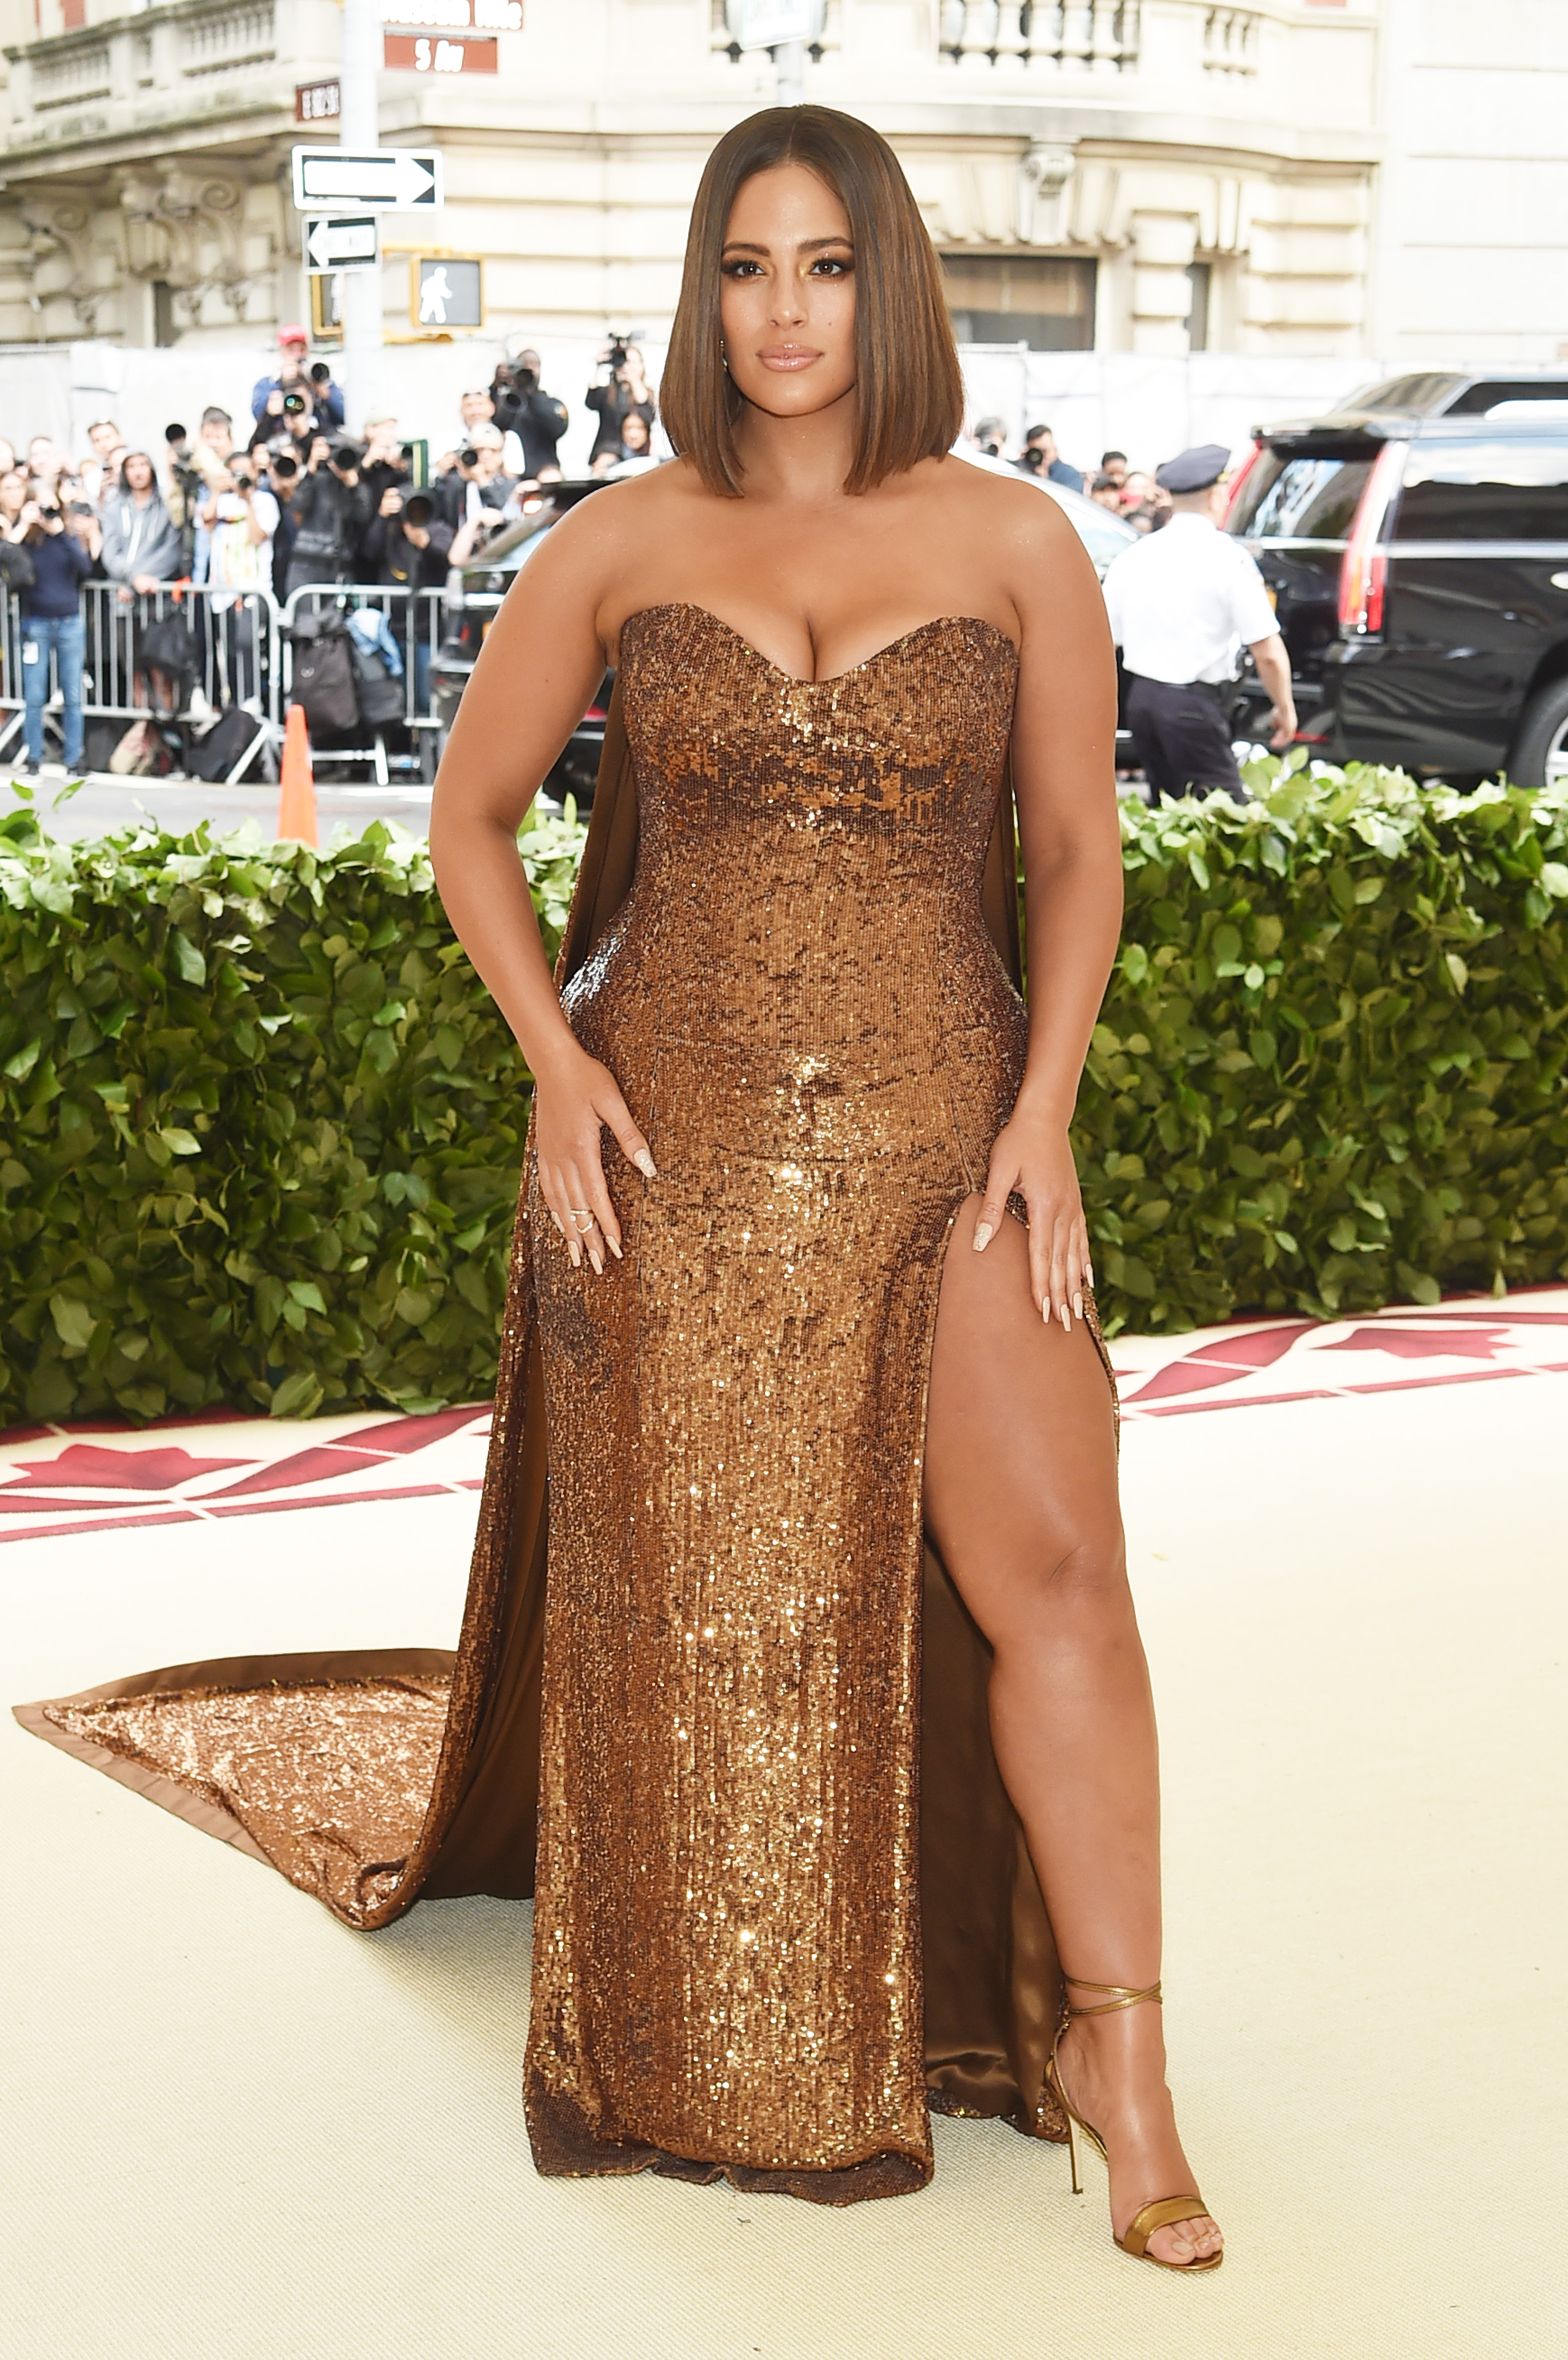 Ashley Graham attends the Heavenly Bodies: Fashion & The Catholic Imagination Costume Institute Gala at The Metropolitan Museum of Art on May 7, 2018 in New York City.